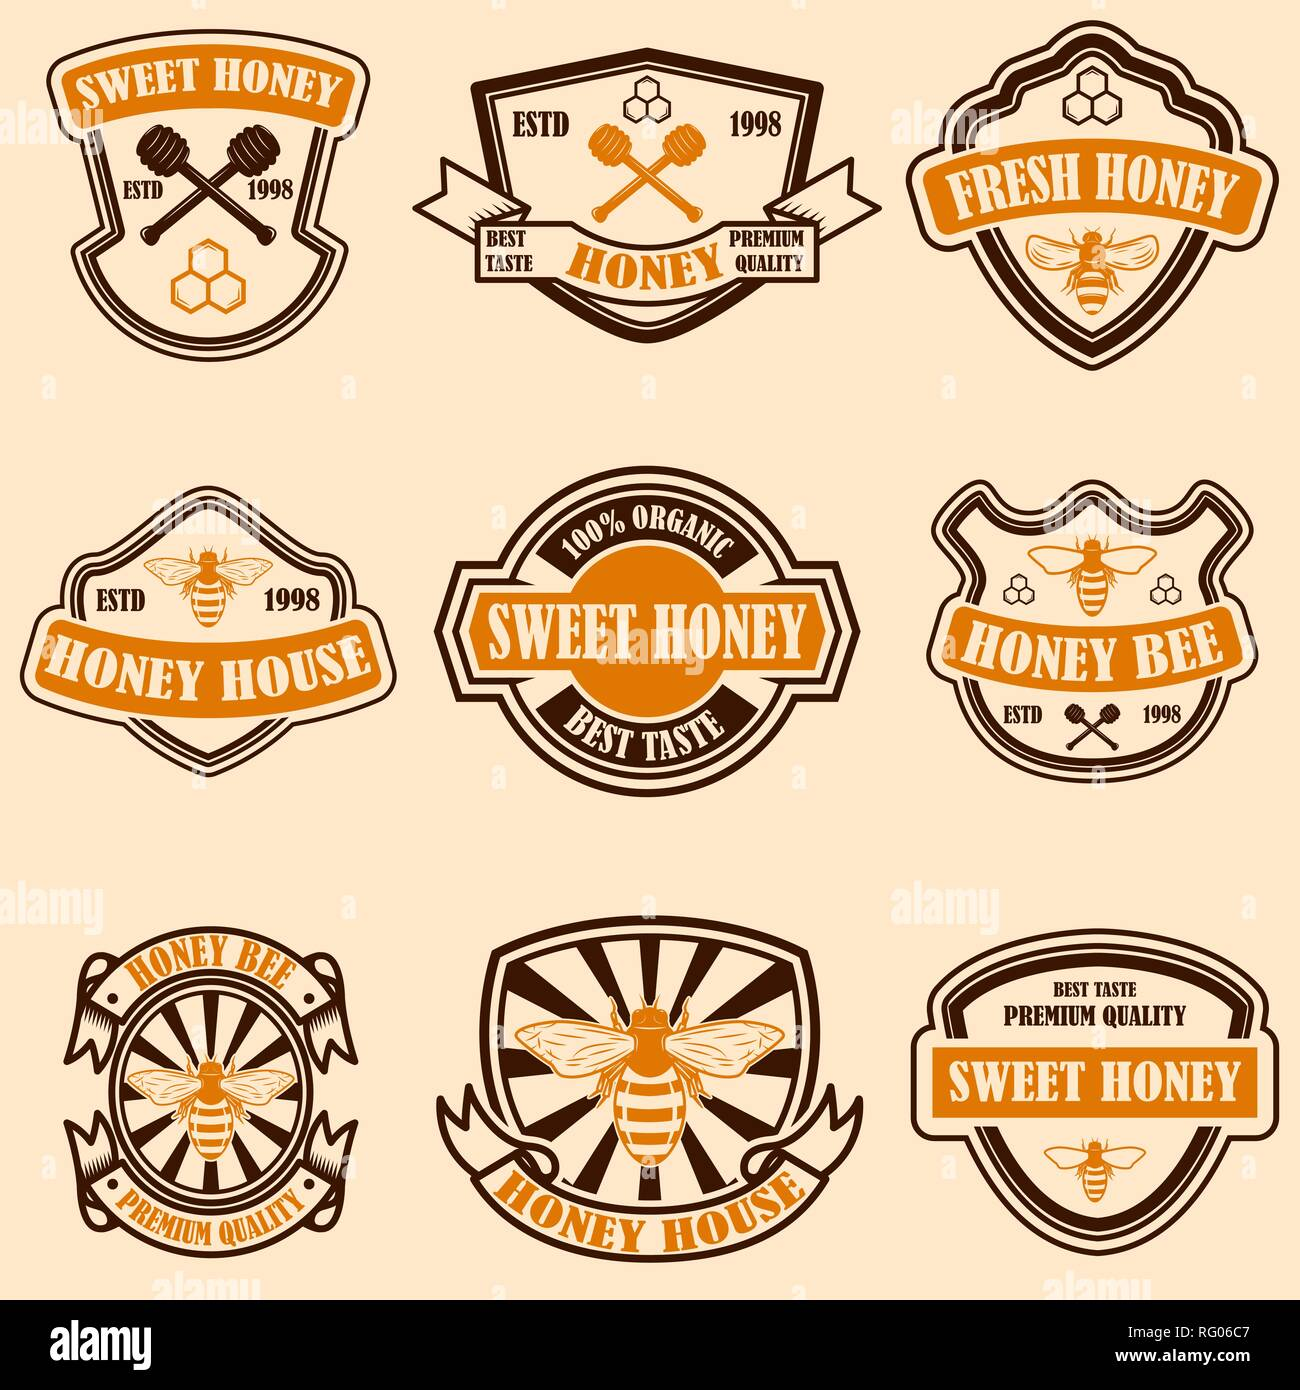 Set Of Vintage Honey Labels Template Bee Icons Design Element For